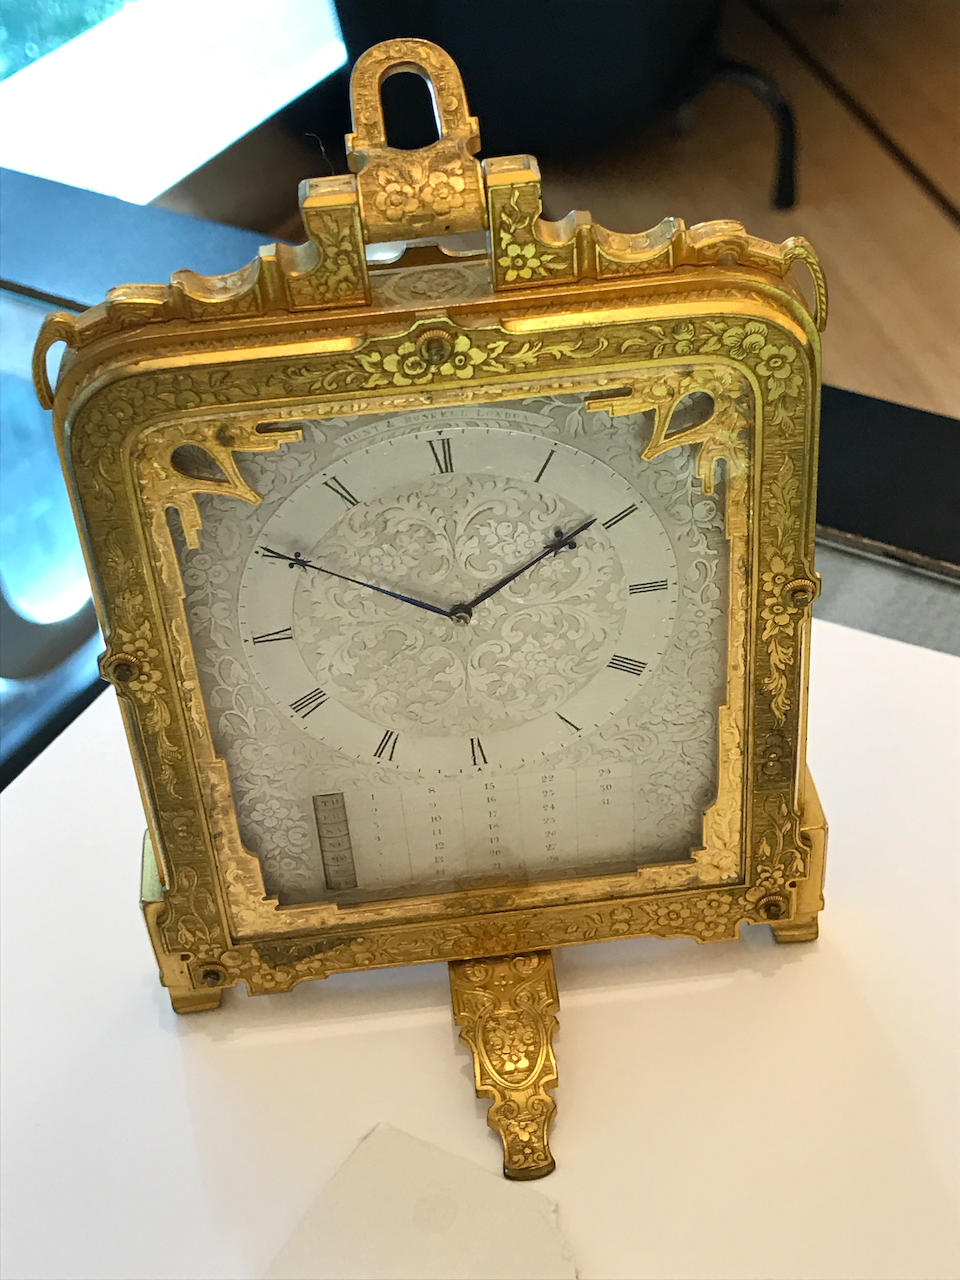 An Engraved gilt brass strut timepiece with calendar in original presentation caseSigned Hunt & Roskell, London Mid 19th century